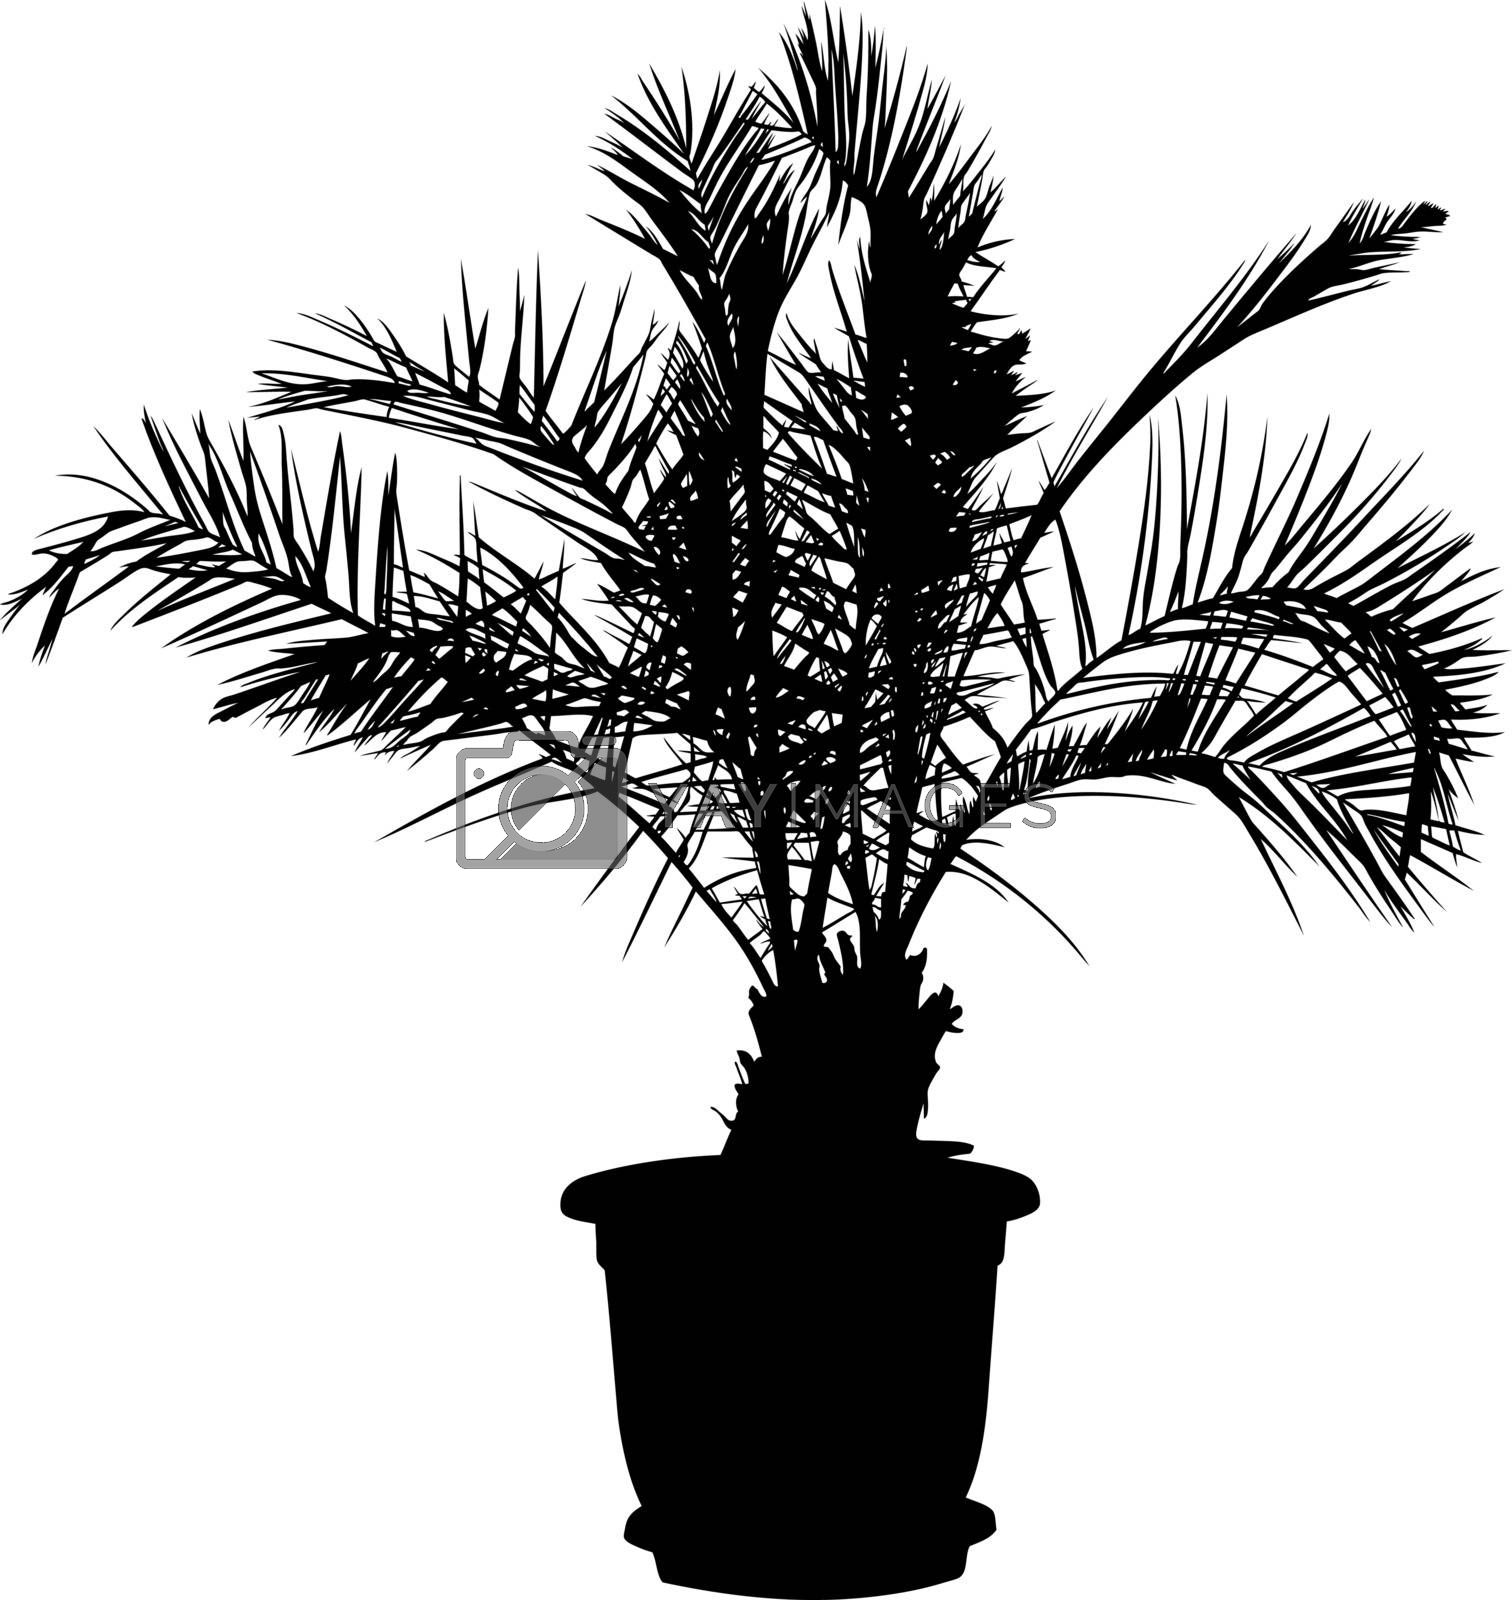 detailed illustration of a palm tree